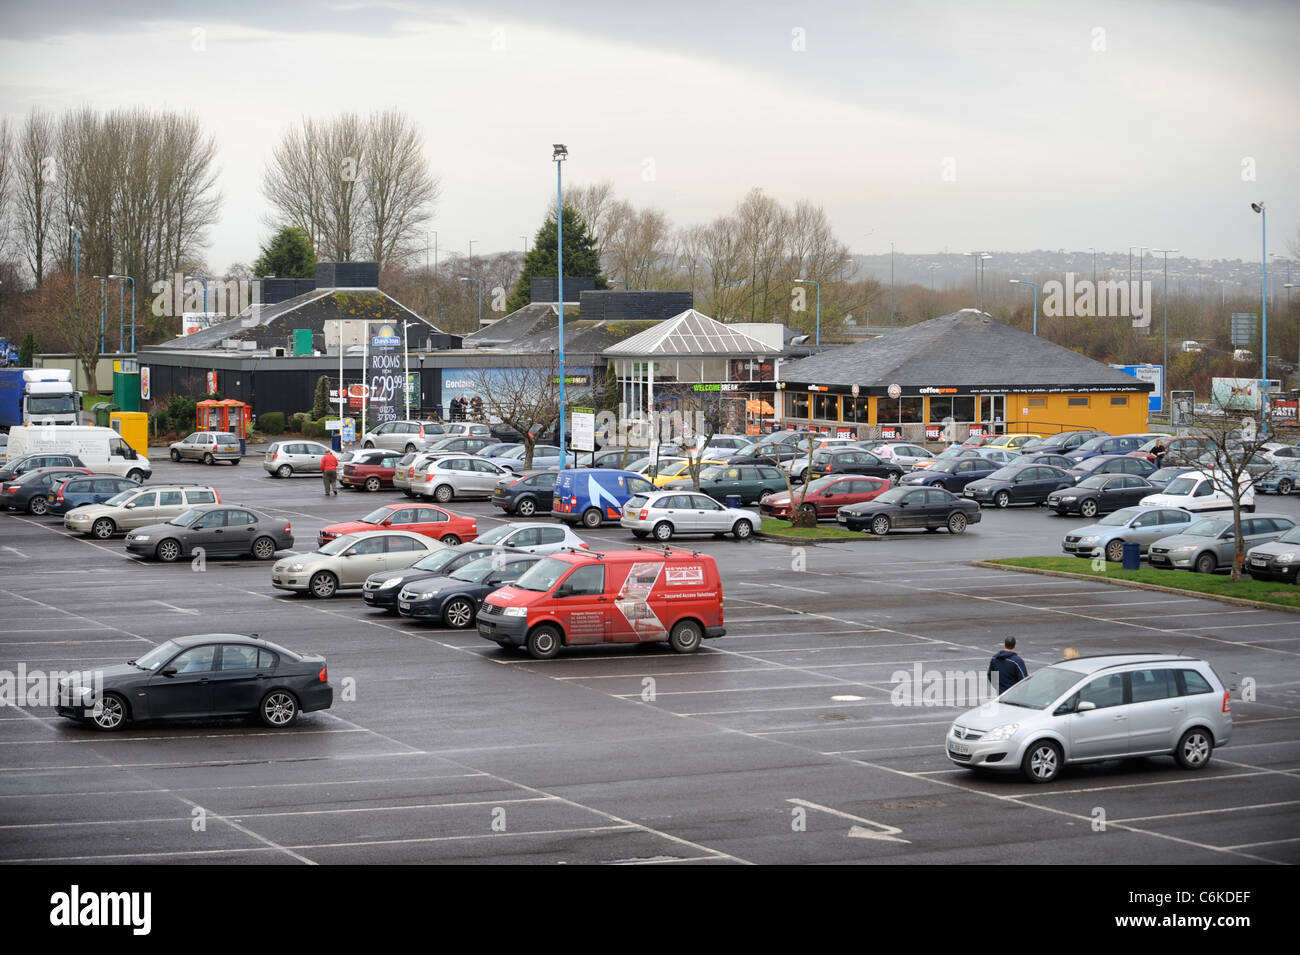 The Easton-in-Gordano service station area near Bristol UK